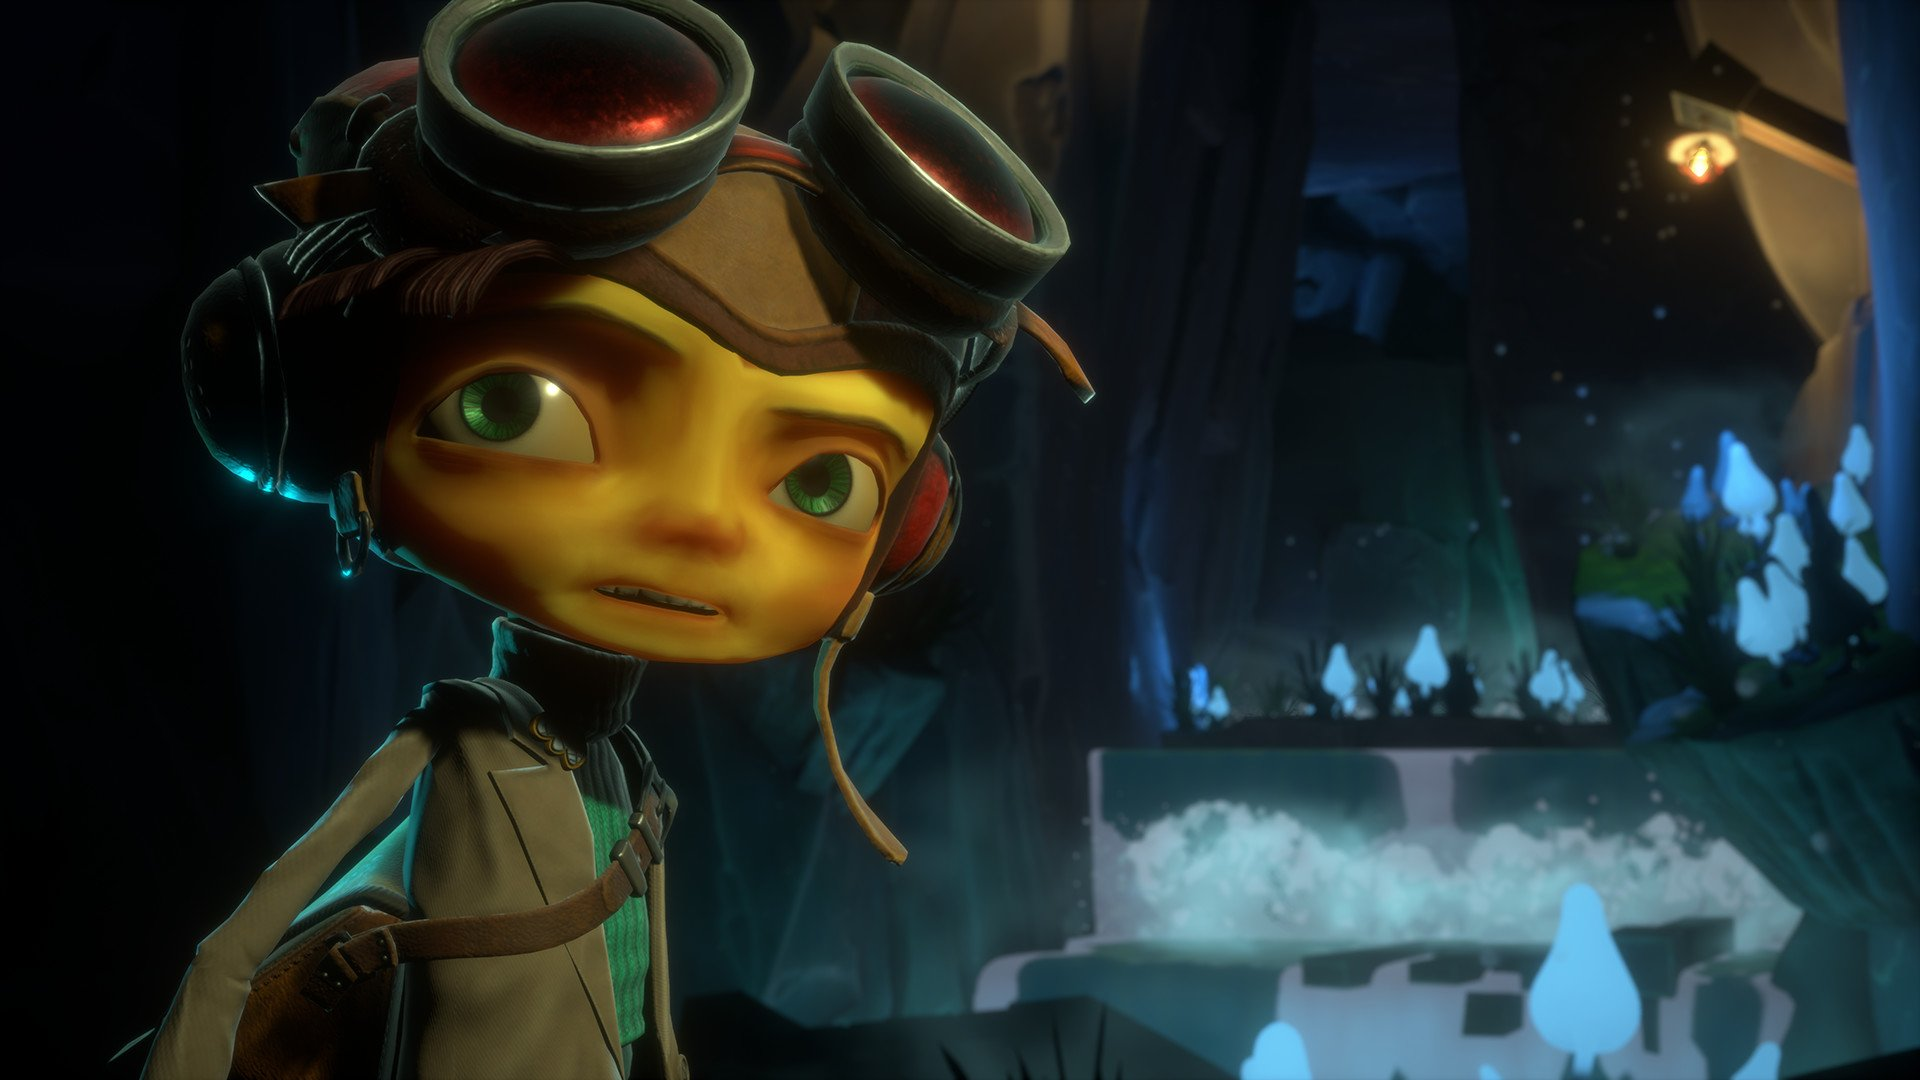 Join Raz and the gang on a new adventure in Psychonauts 2.